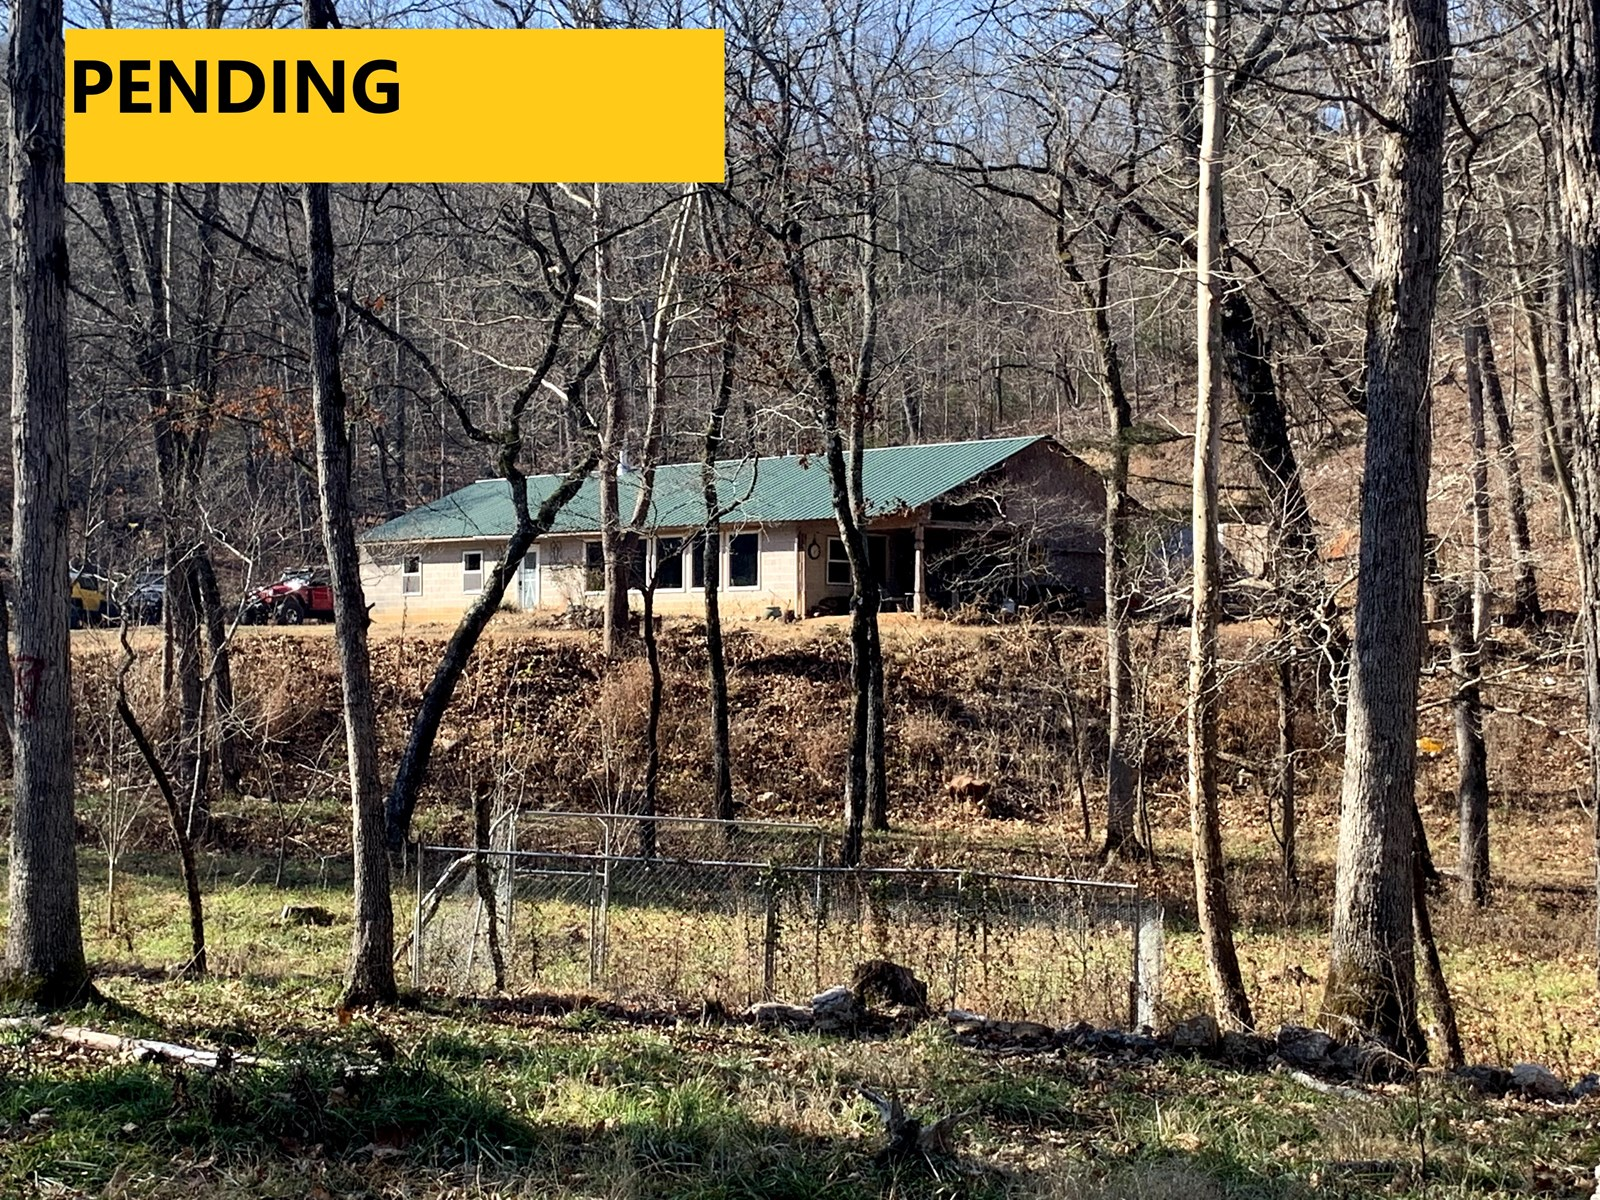 RUSTIC ARTISTIC HOME & 23 AC REA VALLEY